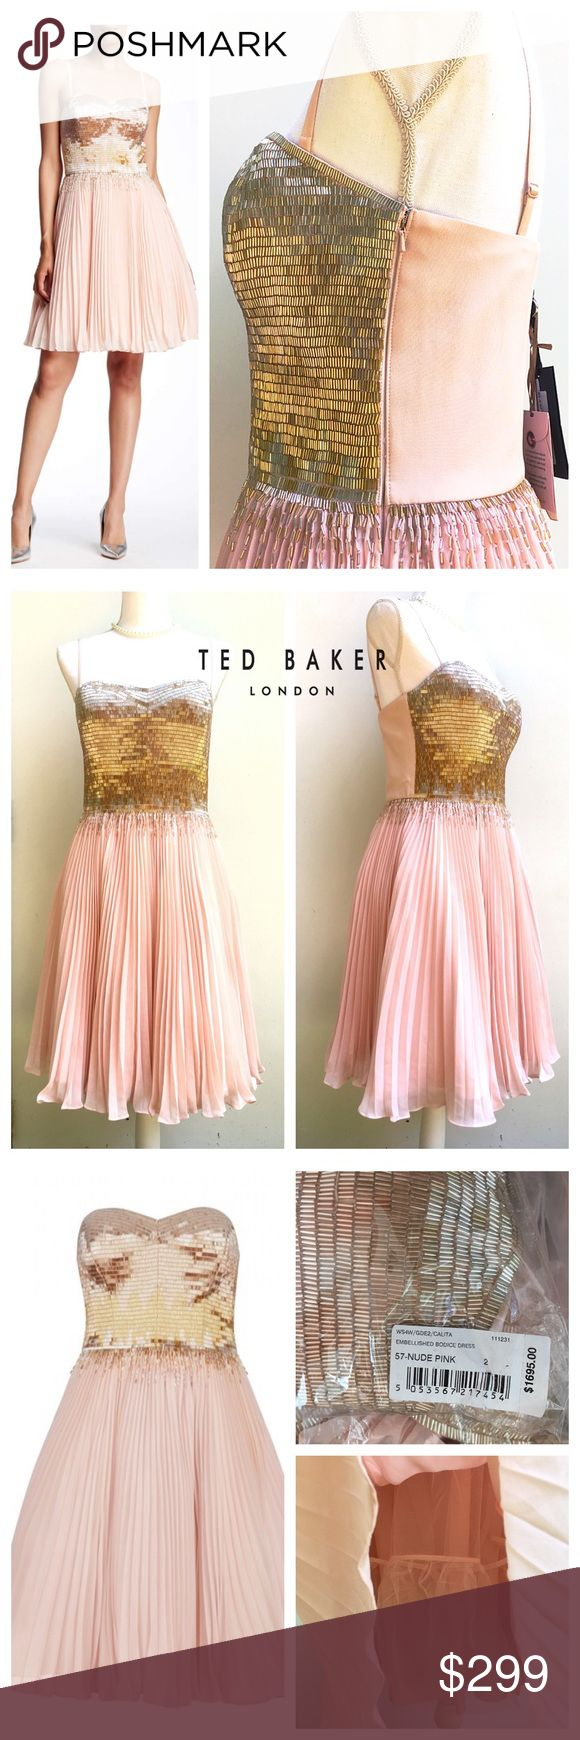 NWT🎀Ted Baker Calita Pink Beaded Silk Dress, 3 Calita Embellished Silk Dress Nude Pink sz 3= US 8. sizes 1,2,3 available. Strapless style features glistening beading across the bodice, with a degrade effect as it falls into the soft, billowing skirt. A true style investment Ted Baker's TUX collection Women's embellished evening dress Fully boned structured bodice Pleated chiffon skirt Hand embellished with glass bugle beads  side zip fastening Comes with removable straps Fabric Content…